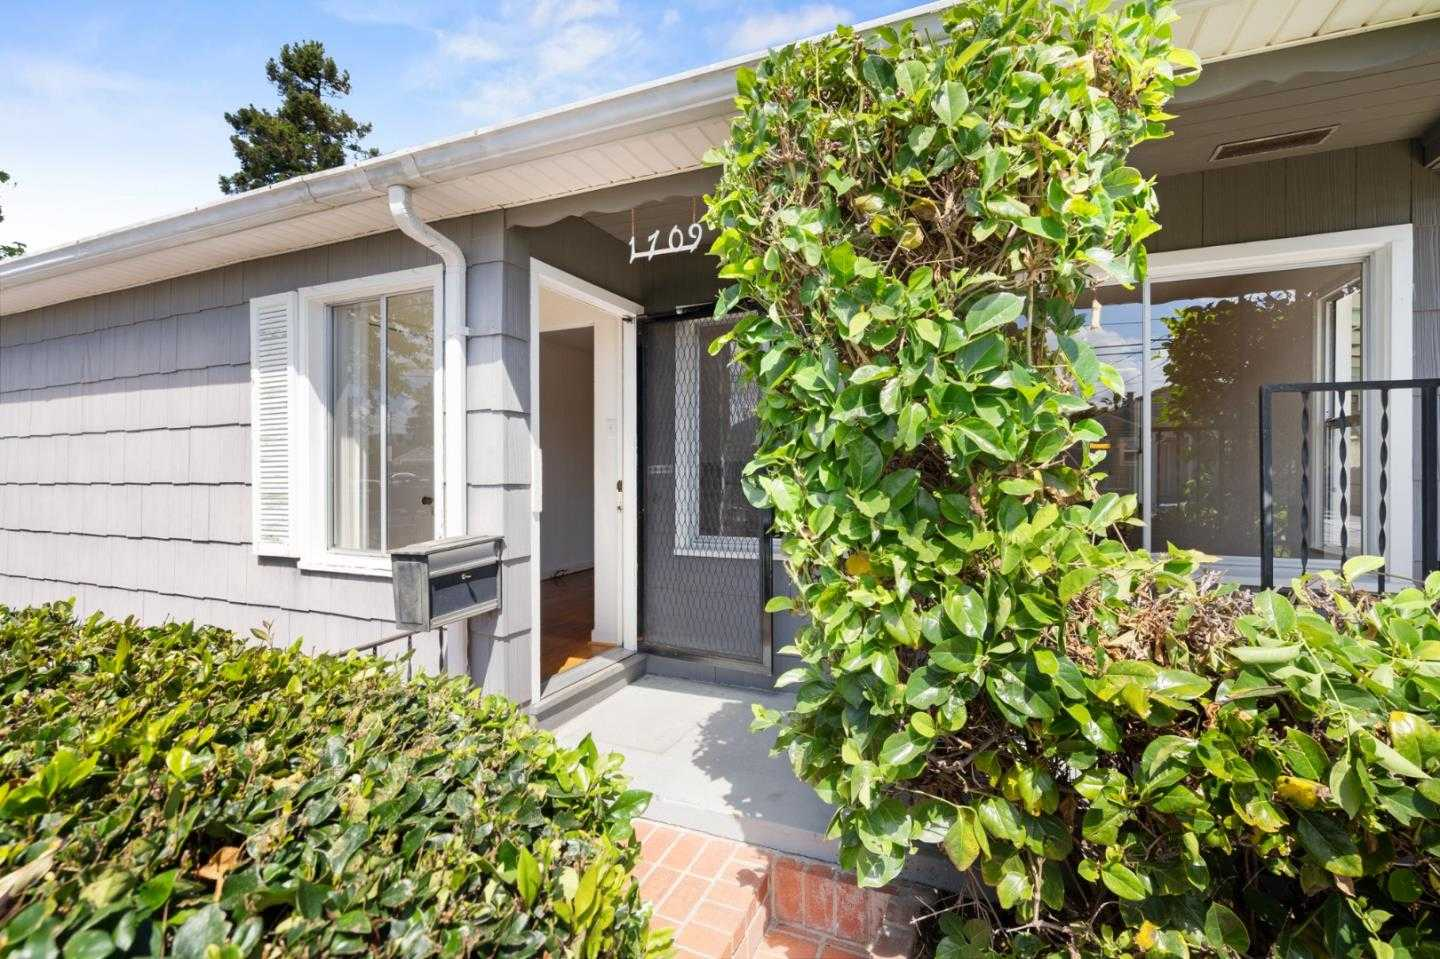 $1,050,000 - 4Br/2Ba -  for Sale in San Mateo